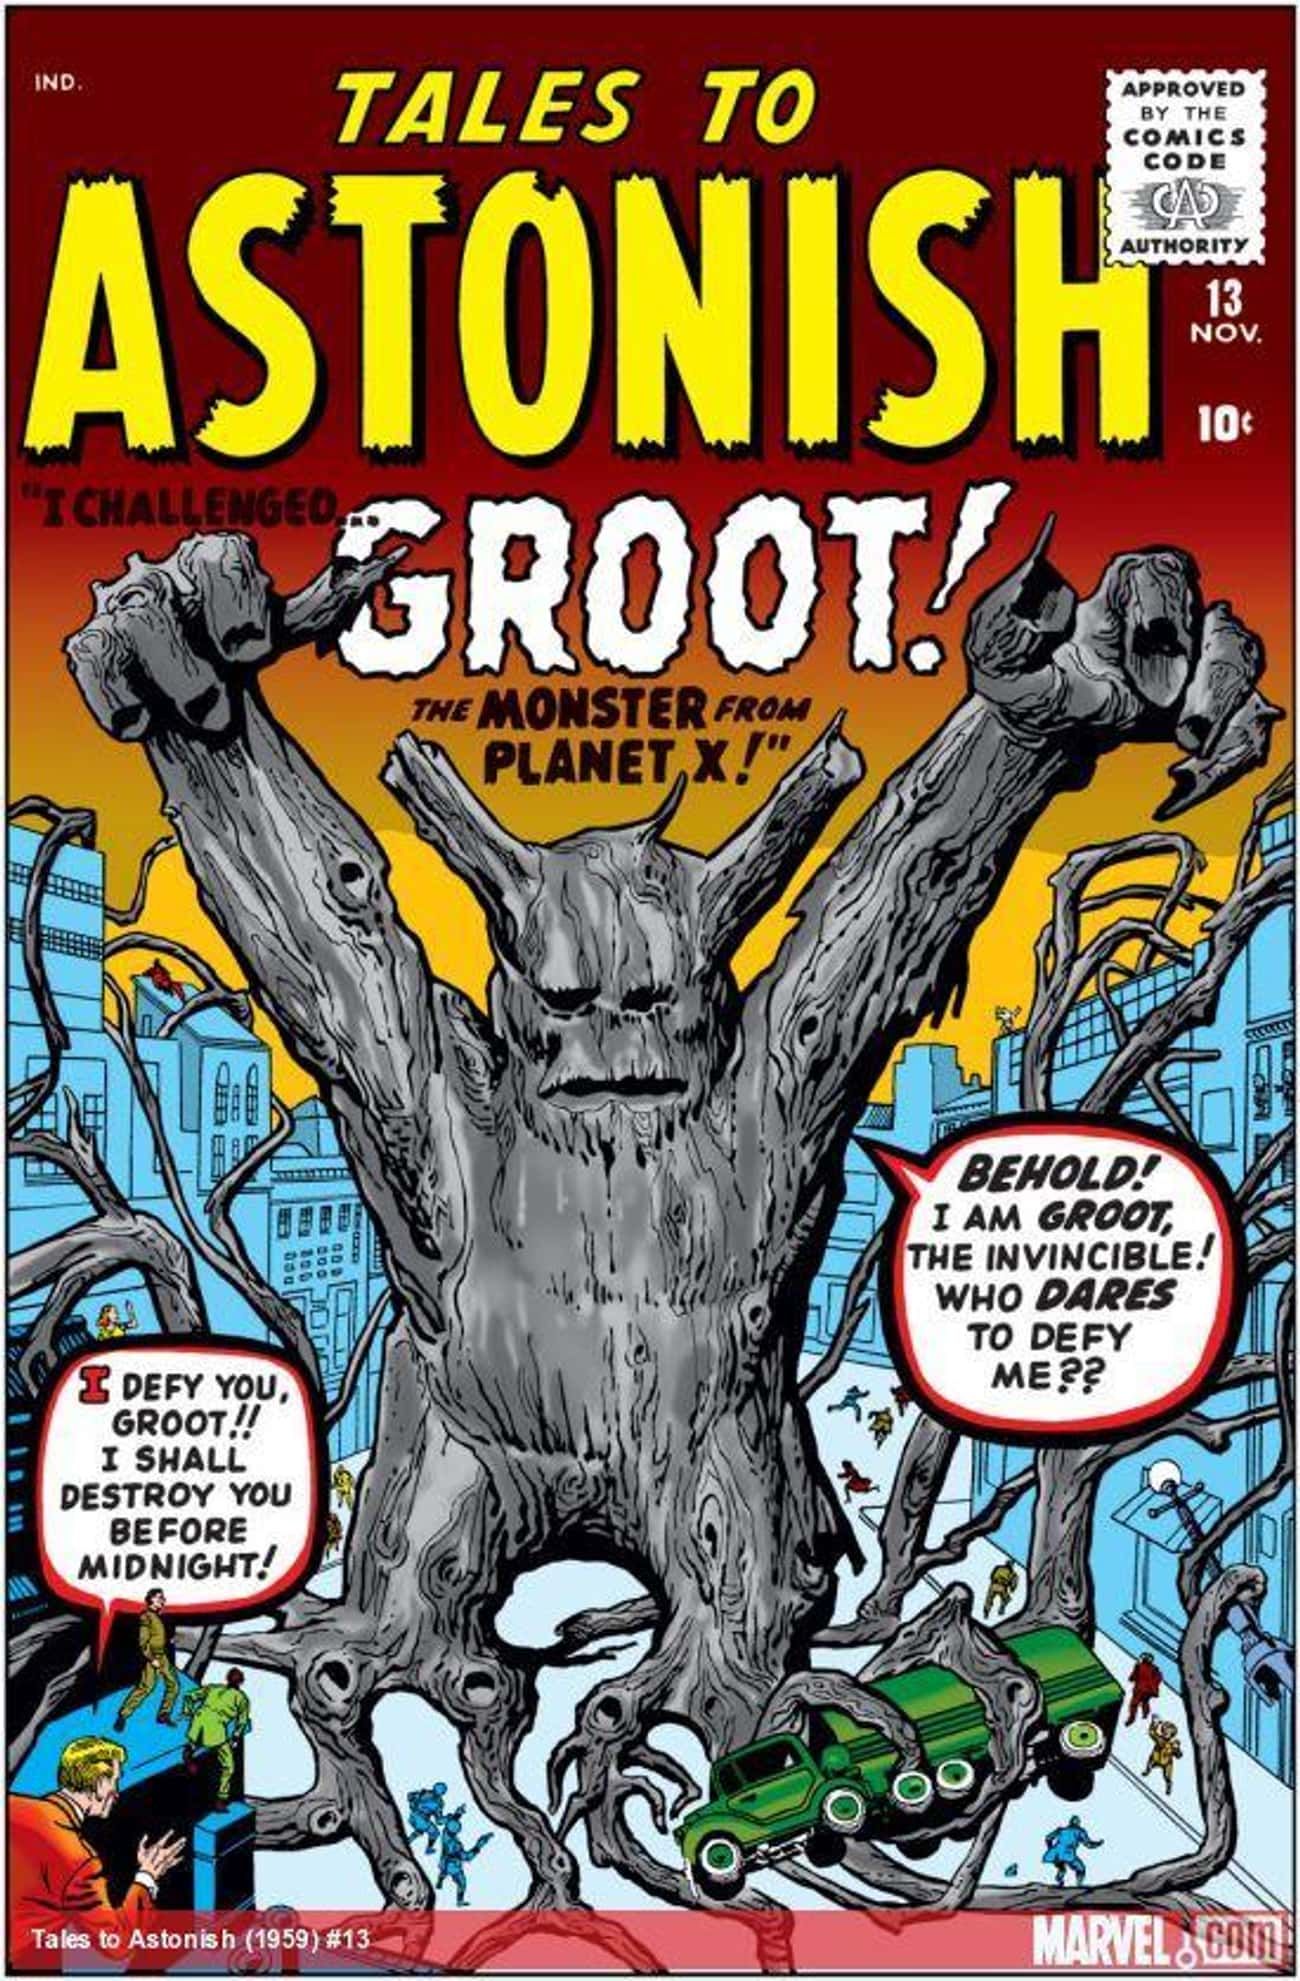 Groot Is A Floral Colossus From The Planet X